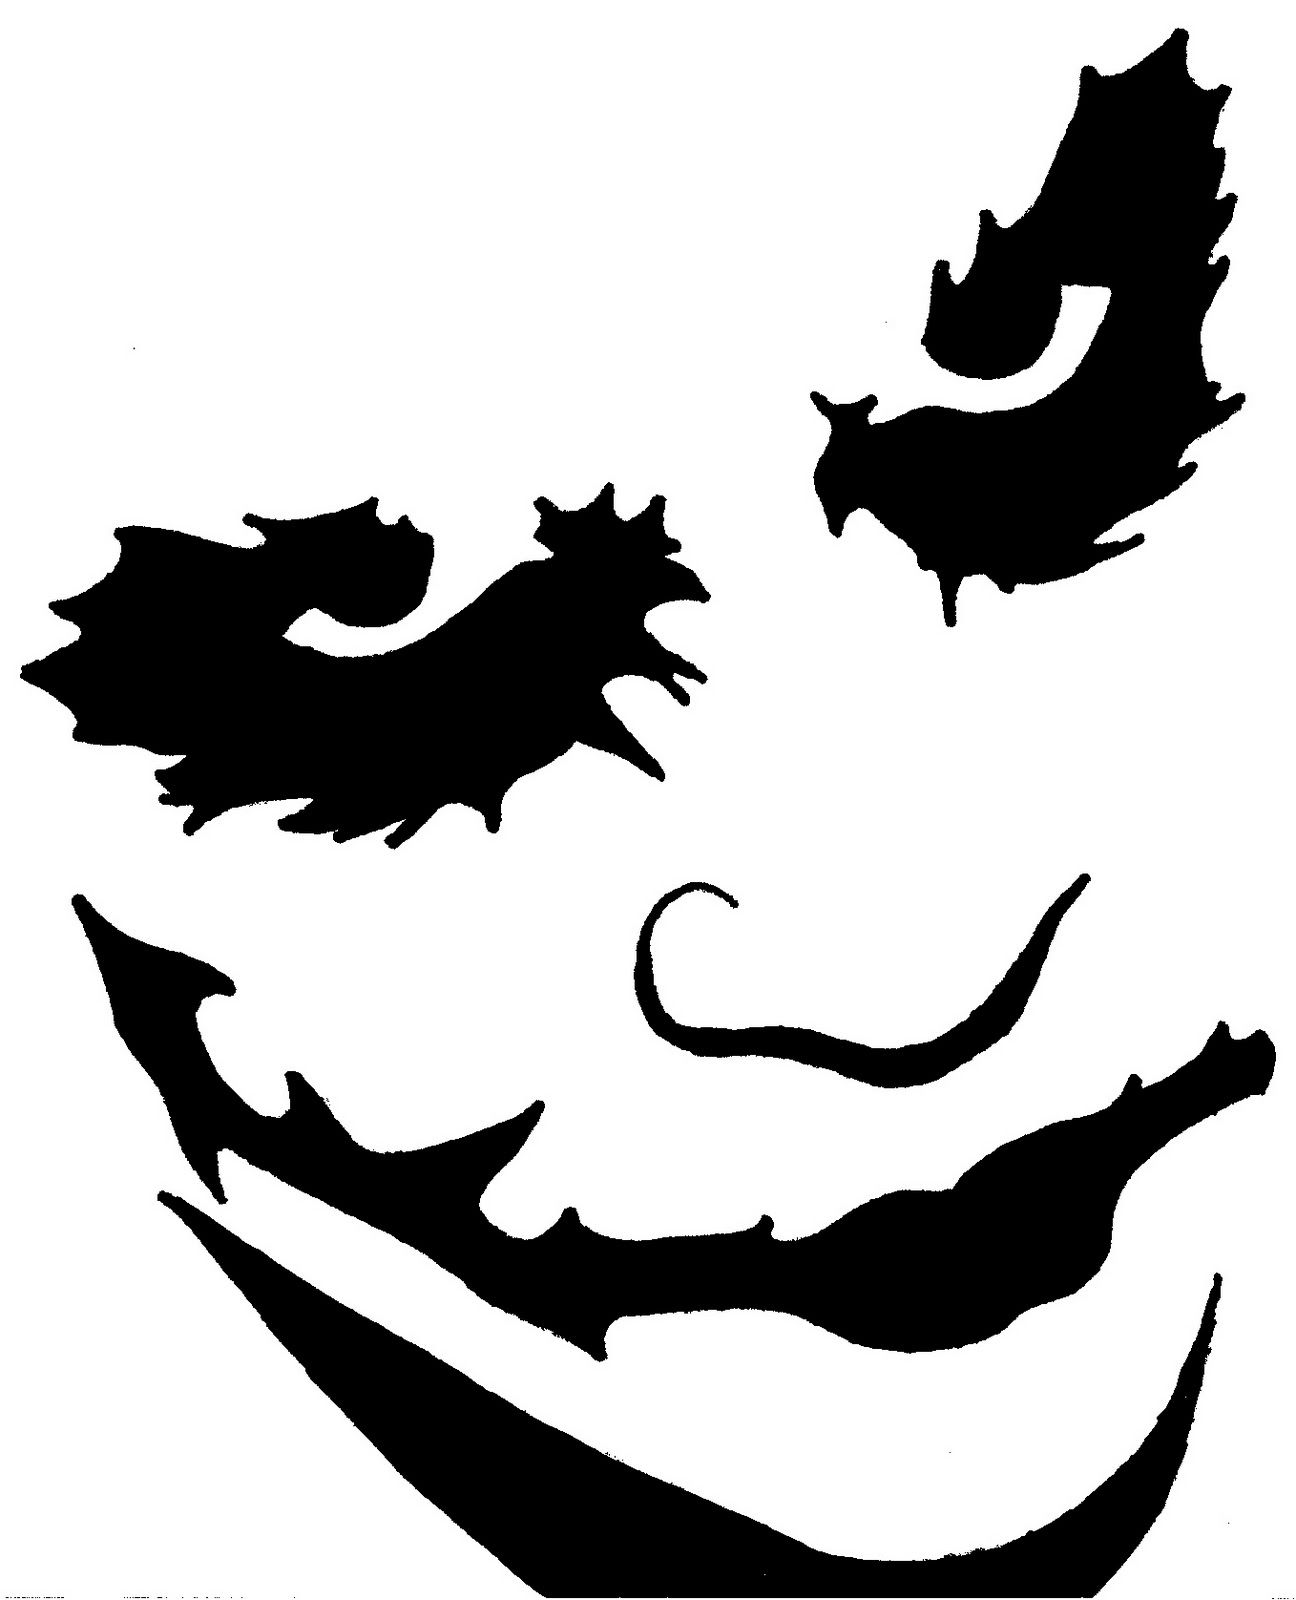 Ariel Pumpkin Carving Pattern Pumpkin Carving Templates Heath Ledger As The Joker Halloween